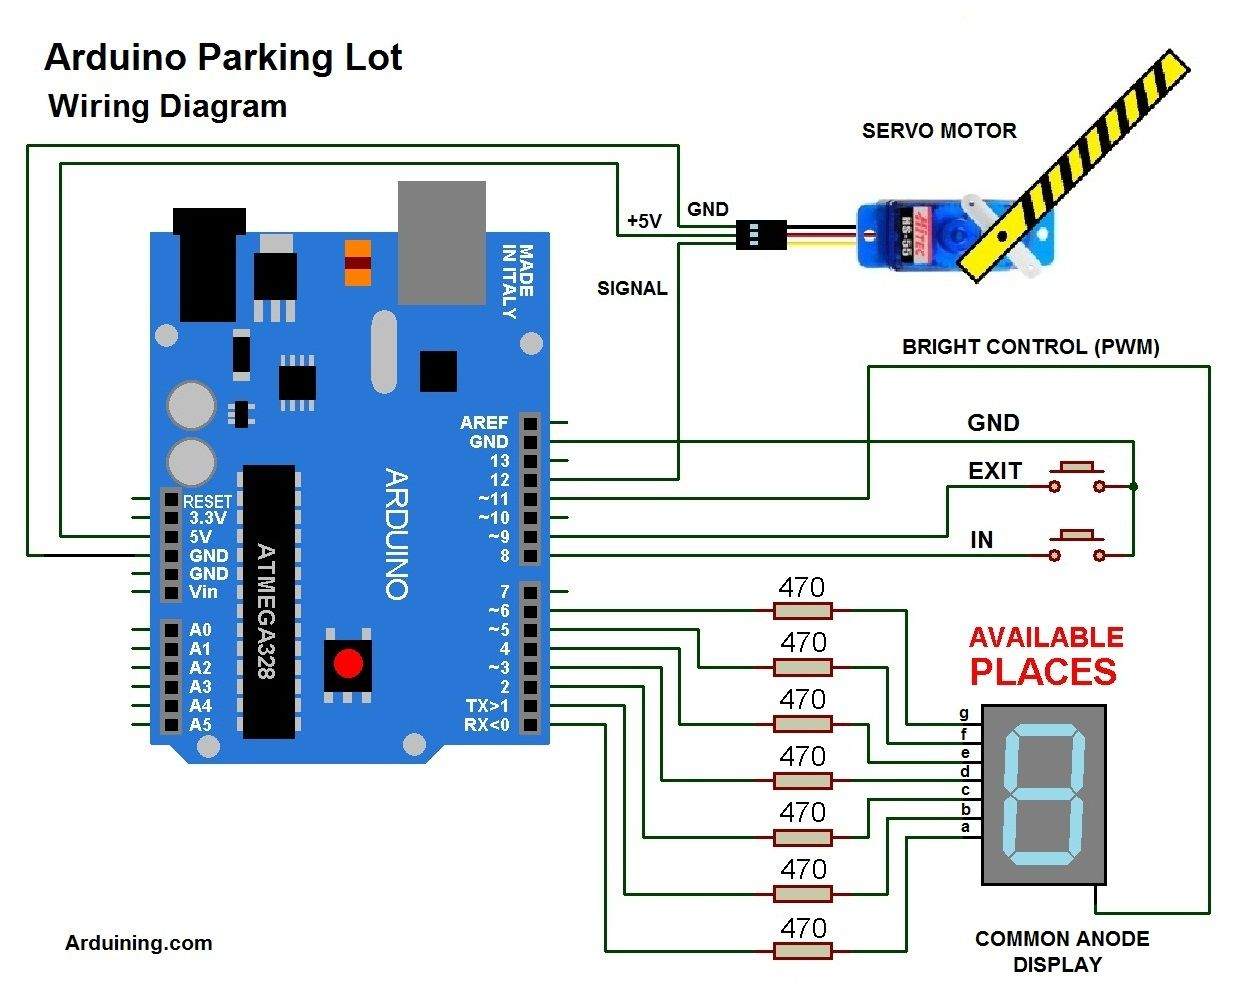 wiring diagram here is the code parkingl02 pde arduining com 08 jul 2012 code used in the production of the youtube material  [ 1247 x 1008 Pixel ]